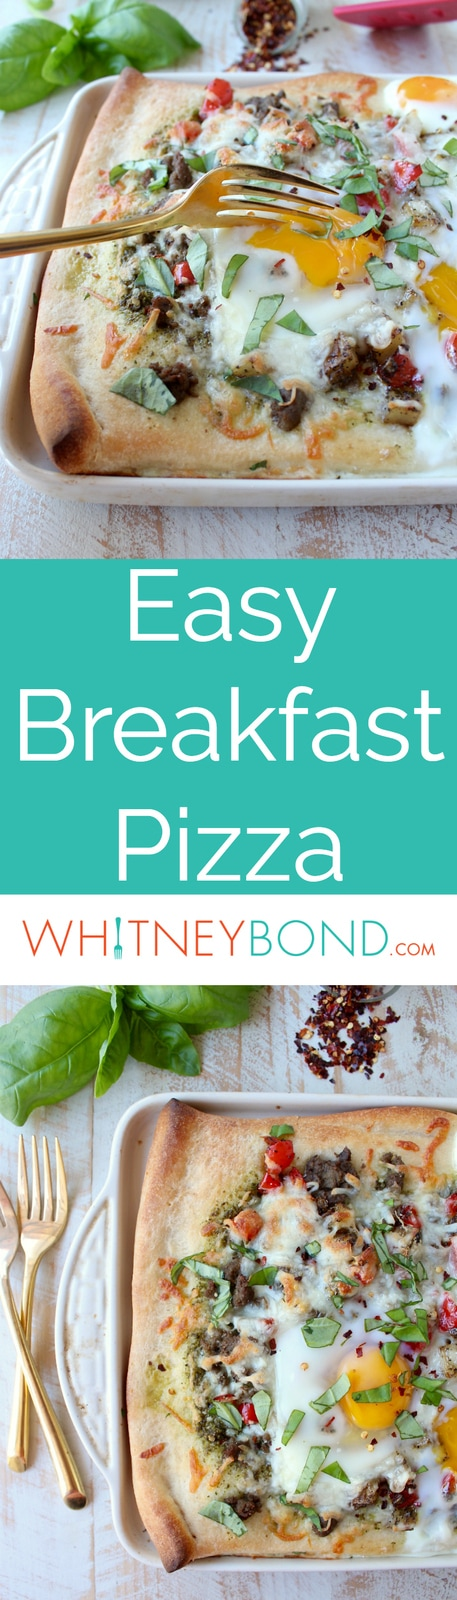 Crispy pizza crust, flavorful turkey sausage, sautéed veggies, baked eggs & parmesan cheese make up this deliciously easy breakfast pizza recipe!